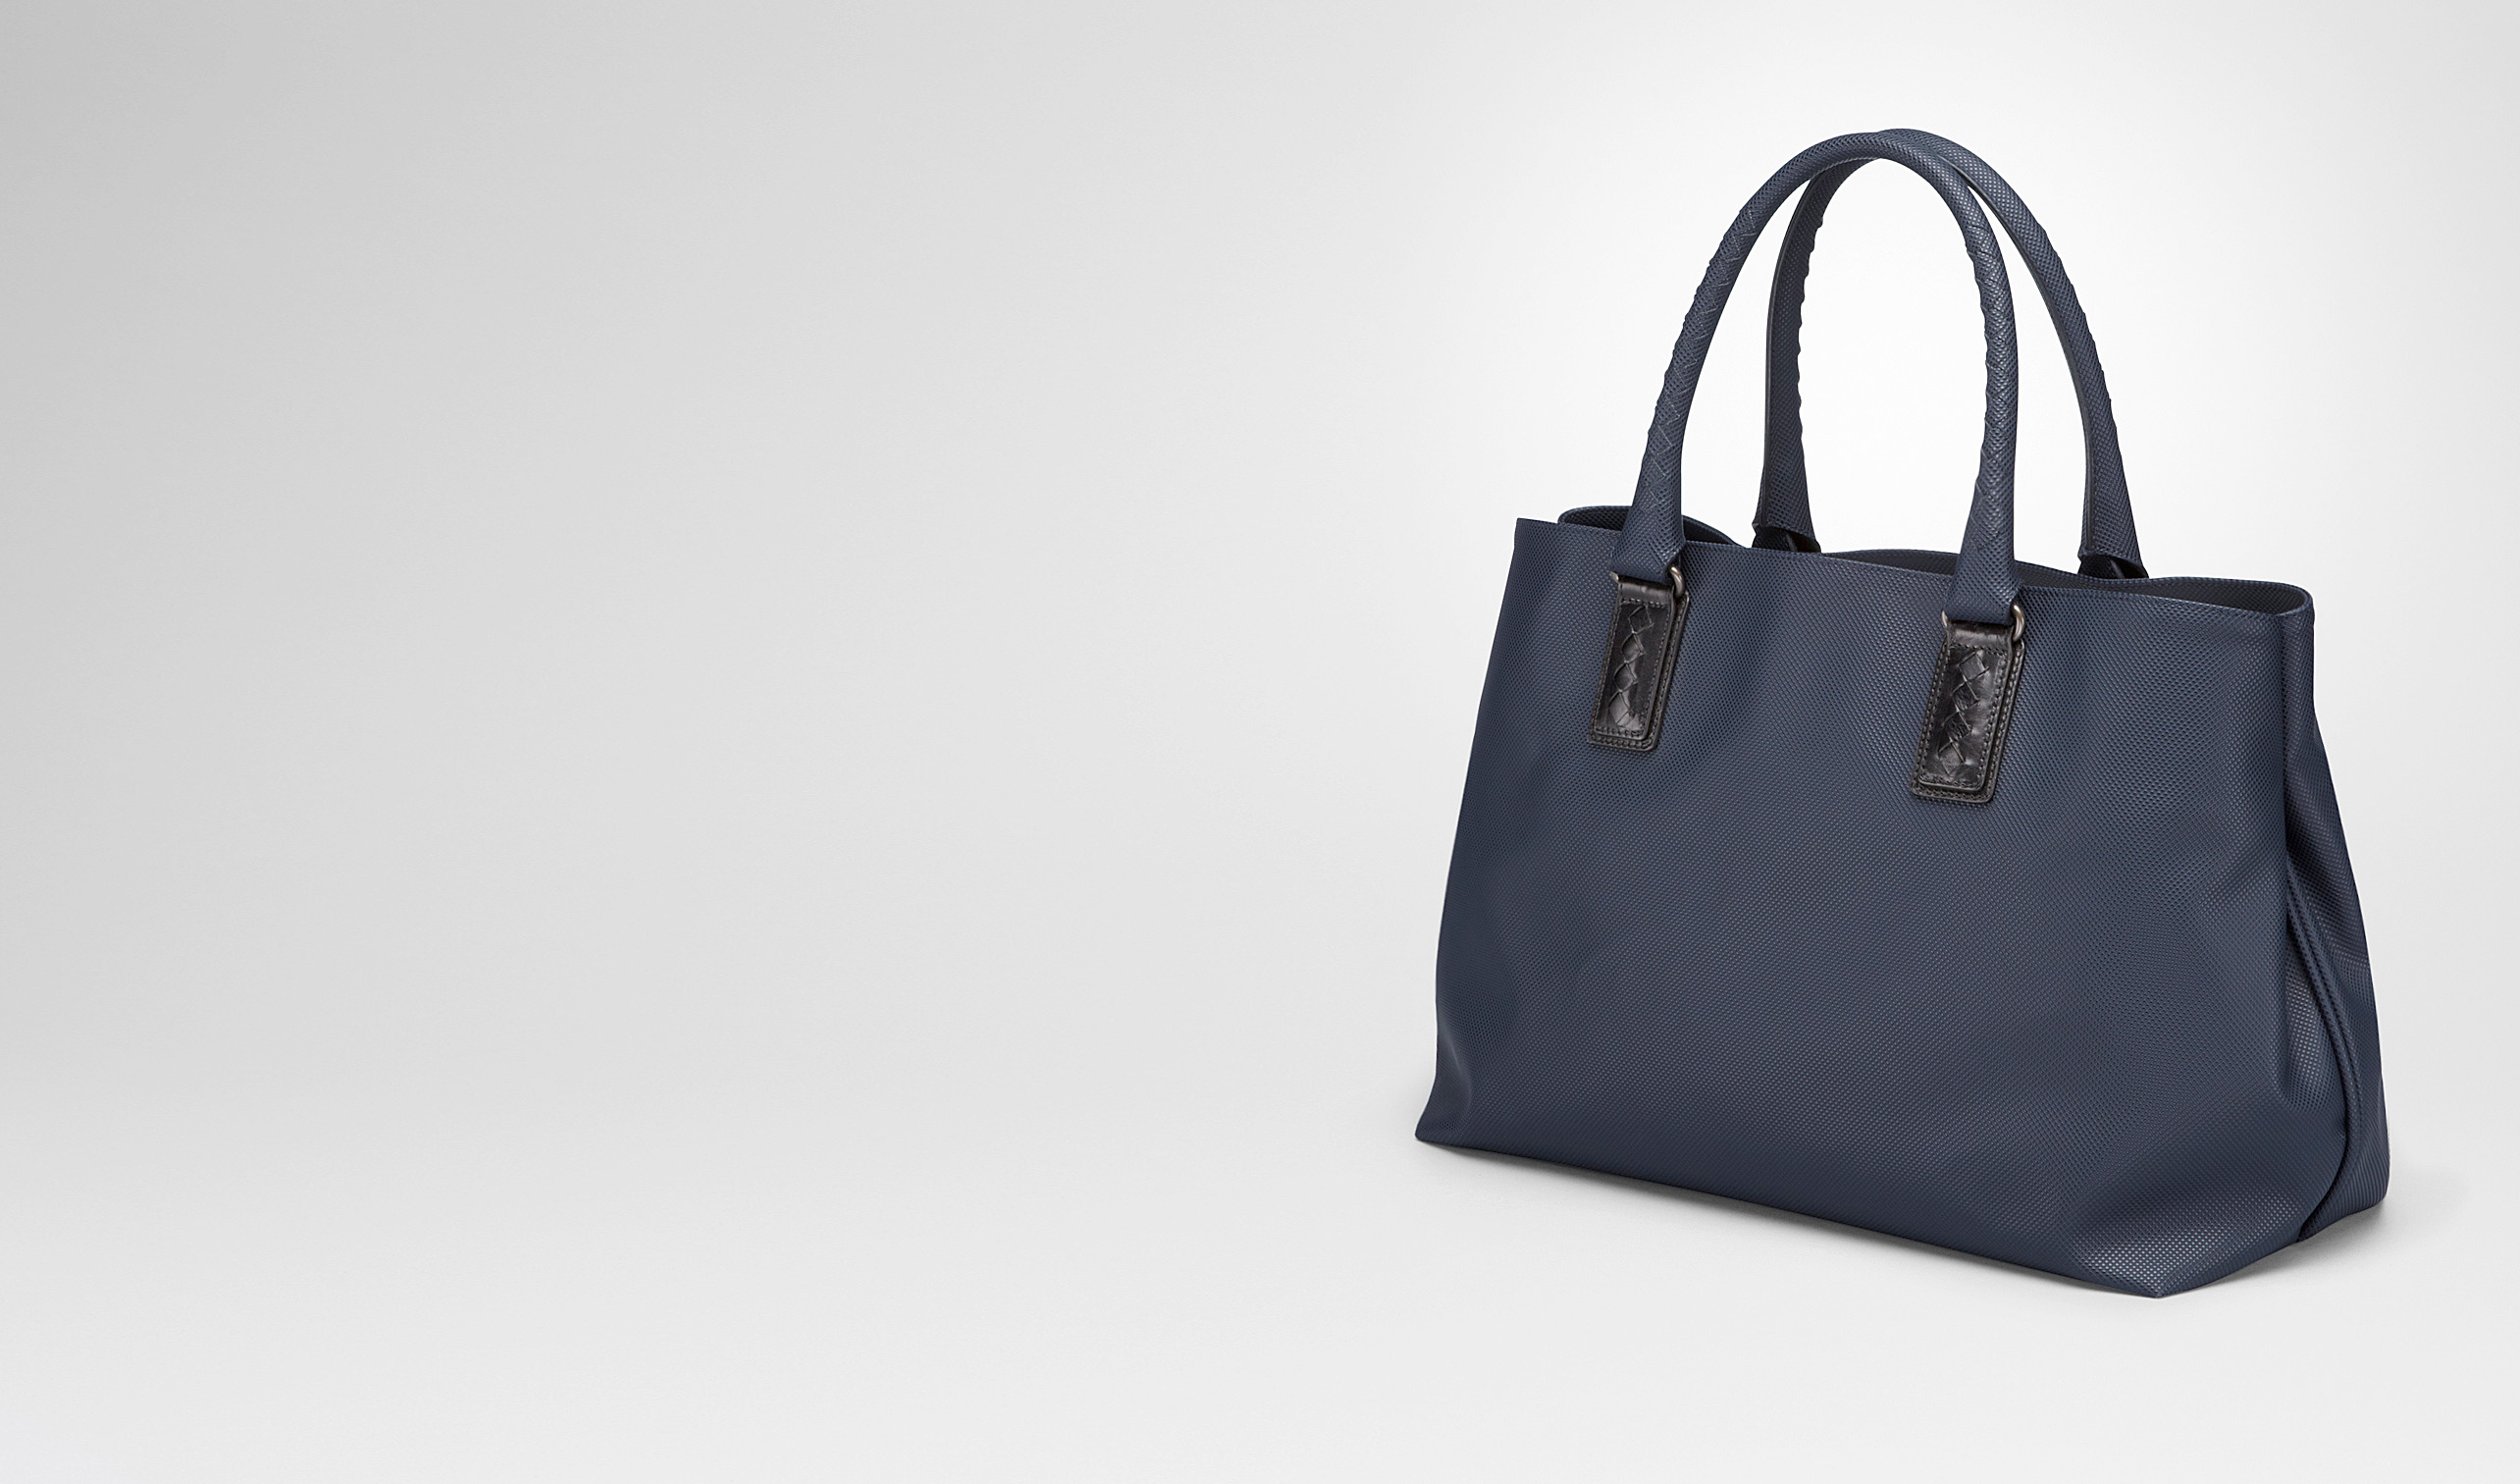 BOTTEGA VENETA Tote Bag E TOTE BAG IN DARK NAVY MARCOPOLO pl